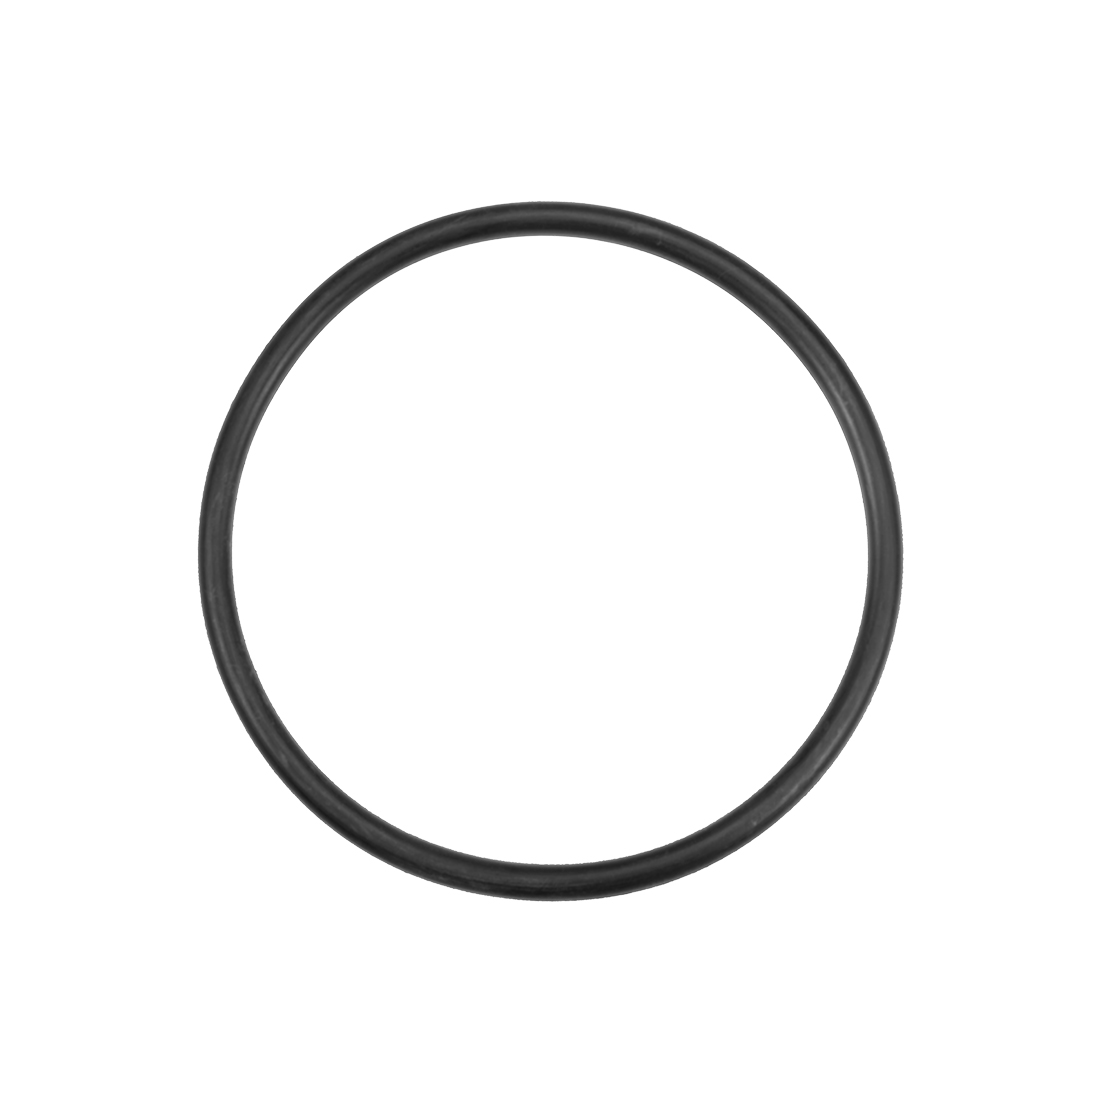 O-Rings Nitrile Rubber 98.6mm x 110mm x 5.7mm Round Seal Gasket